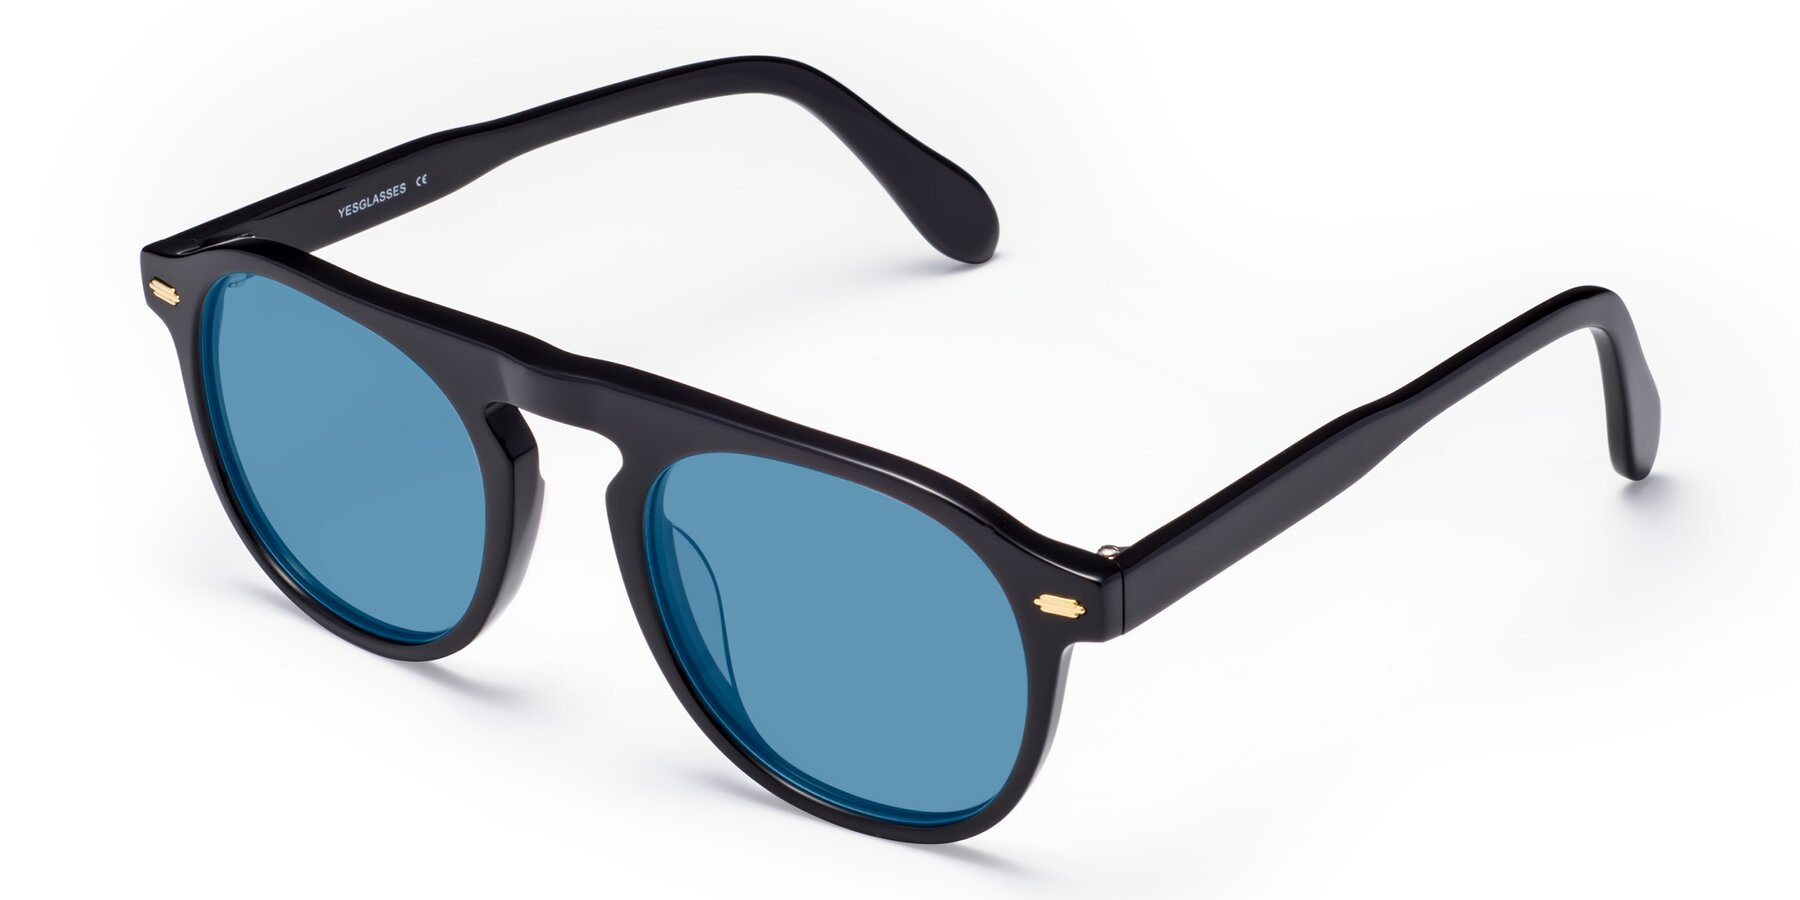 Angle of Mufasa in Black with Medium Blue Tinted Lenses